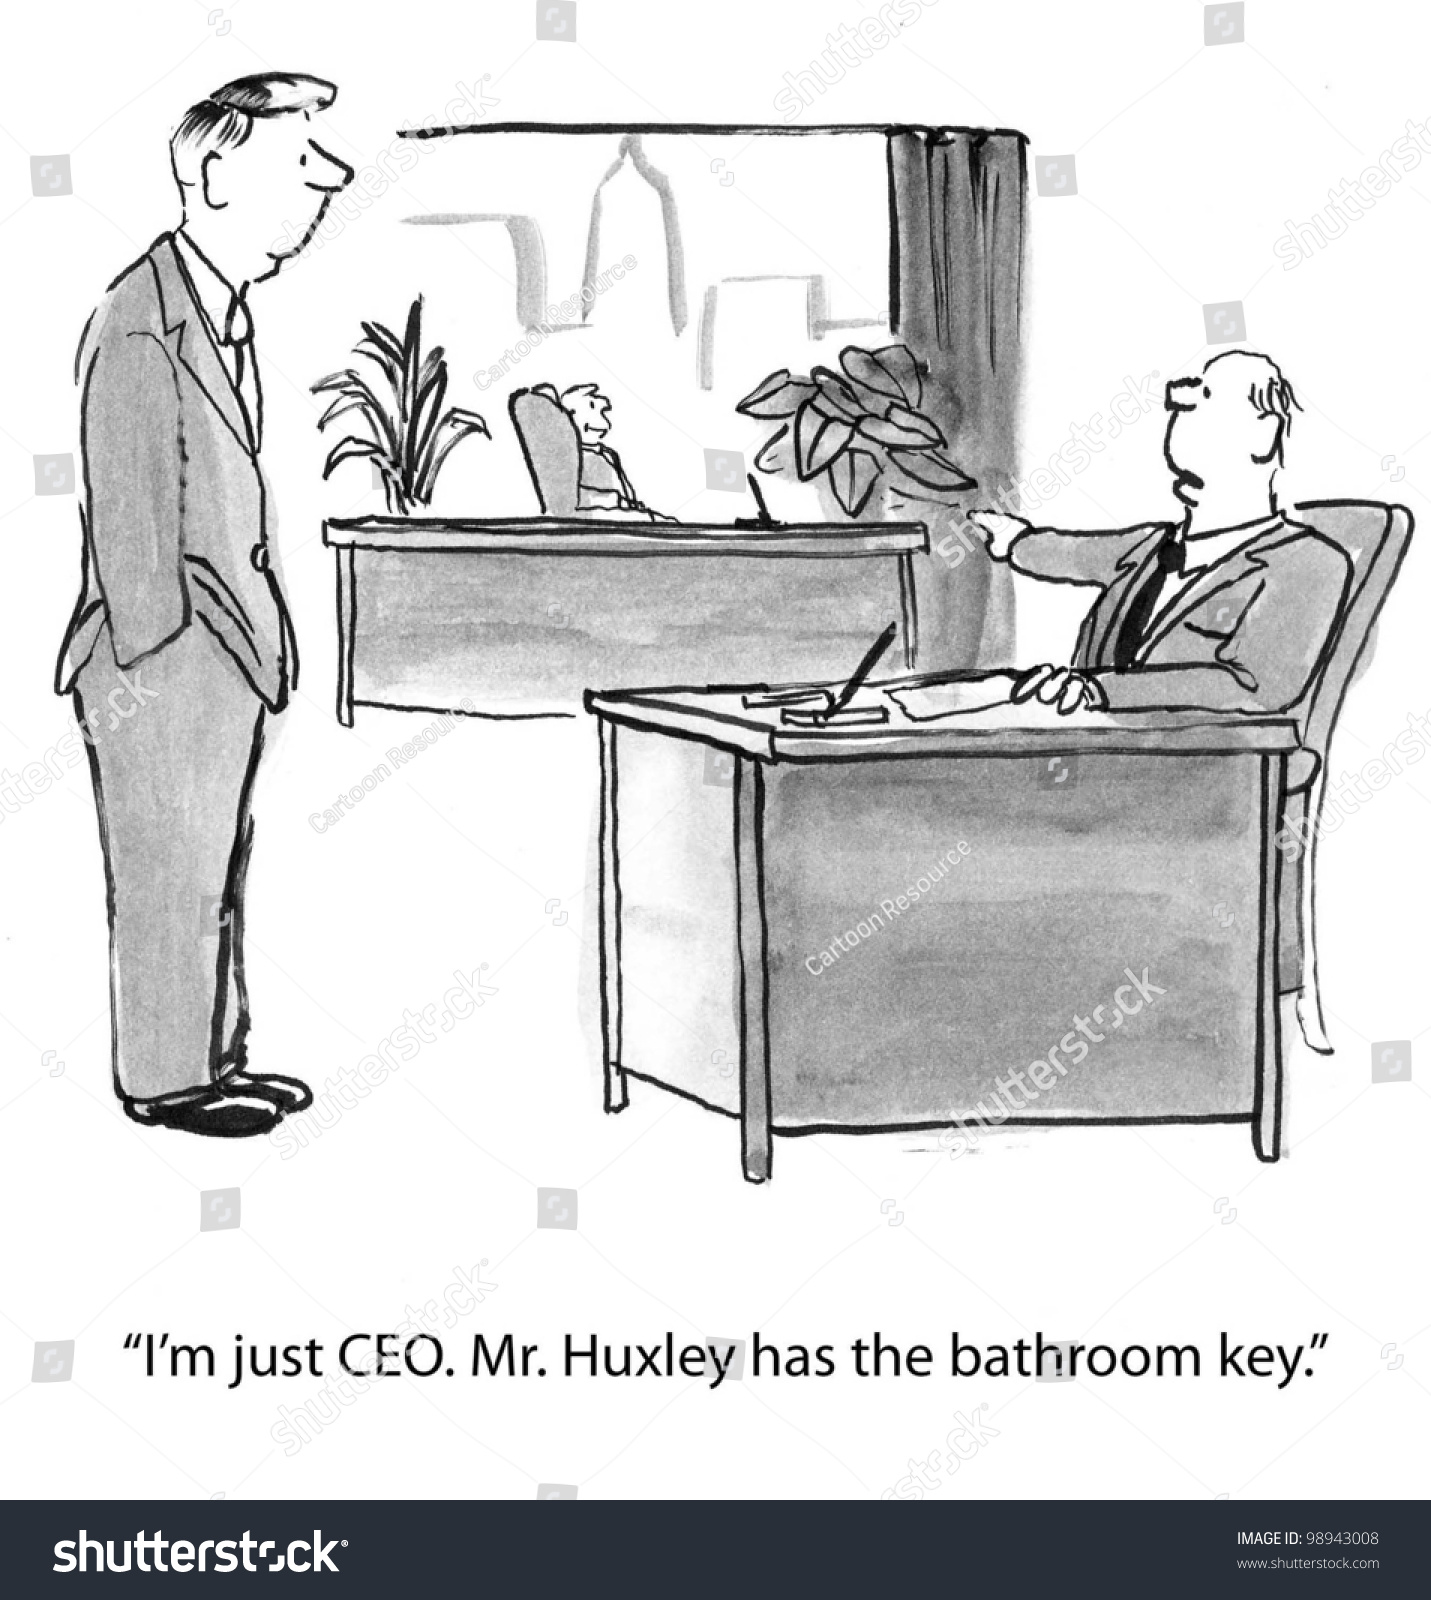 Just Ceo He Has Bathroom Key Stock Illustration